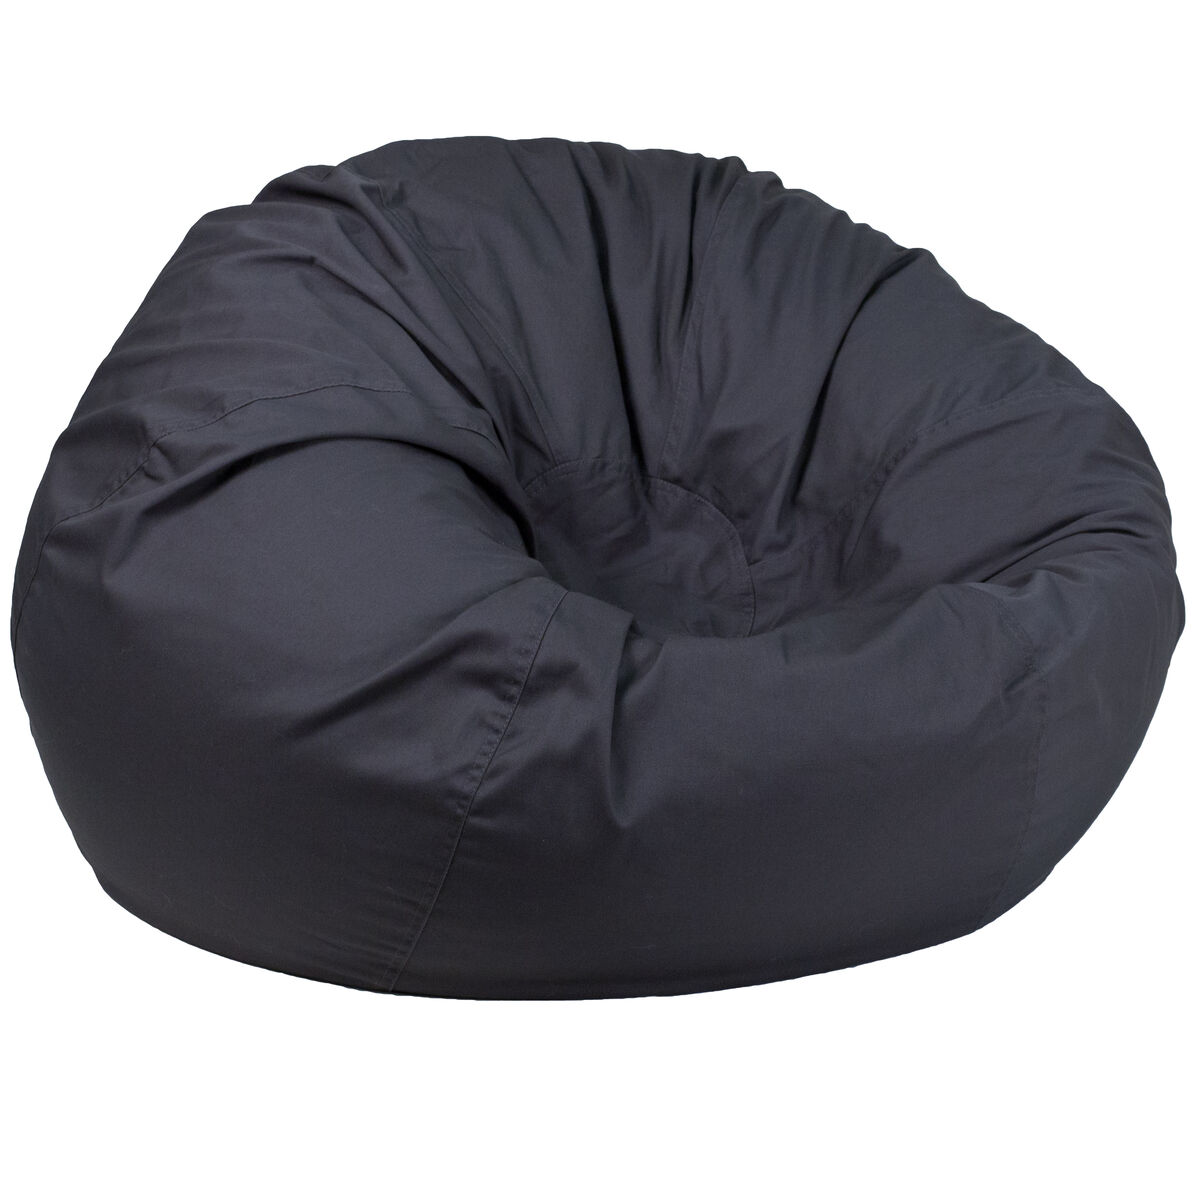 Our Oversized Solid Gray Bean Bag Chair Is On Now